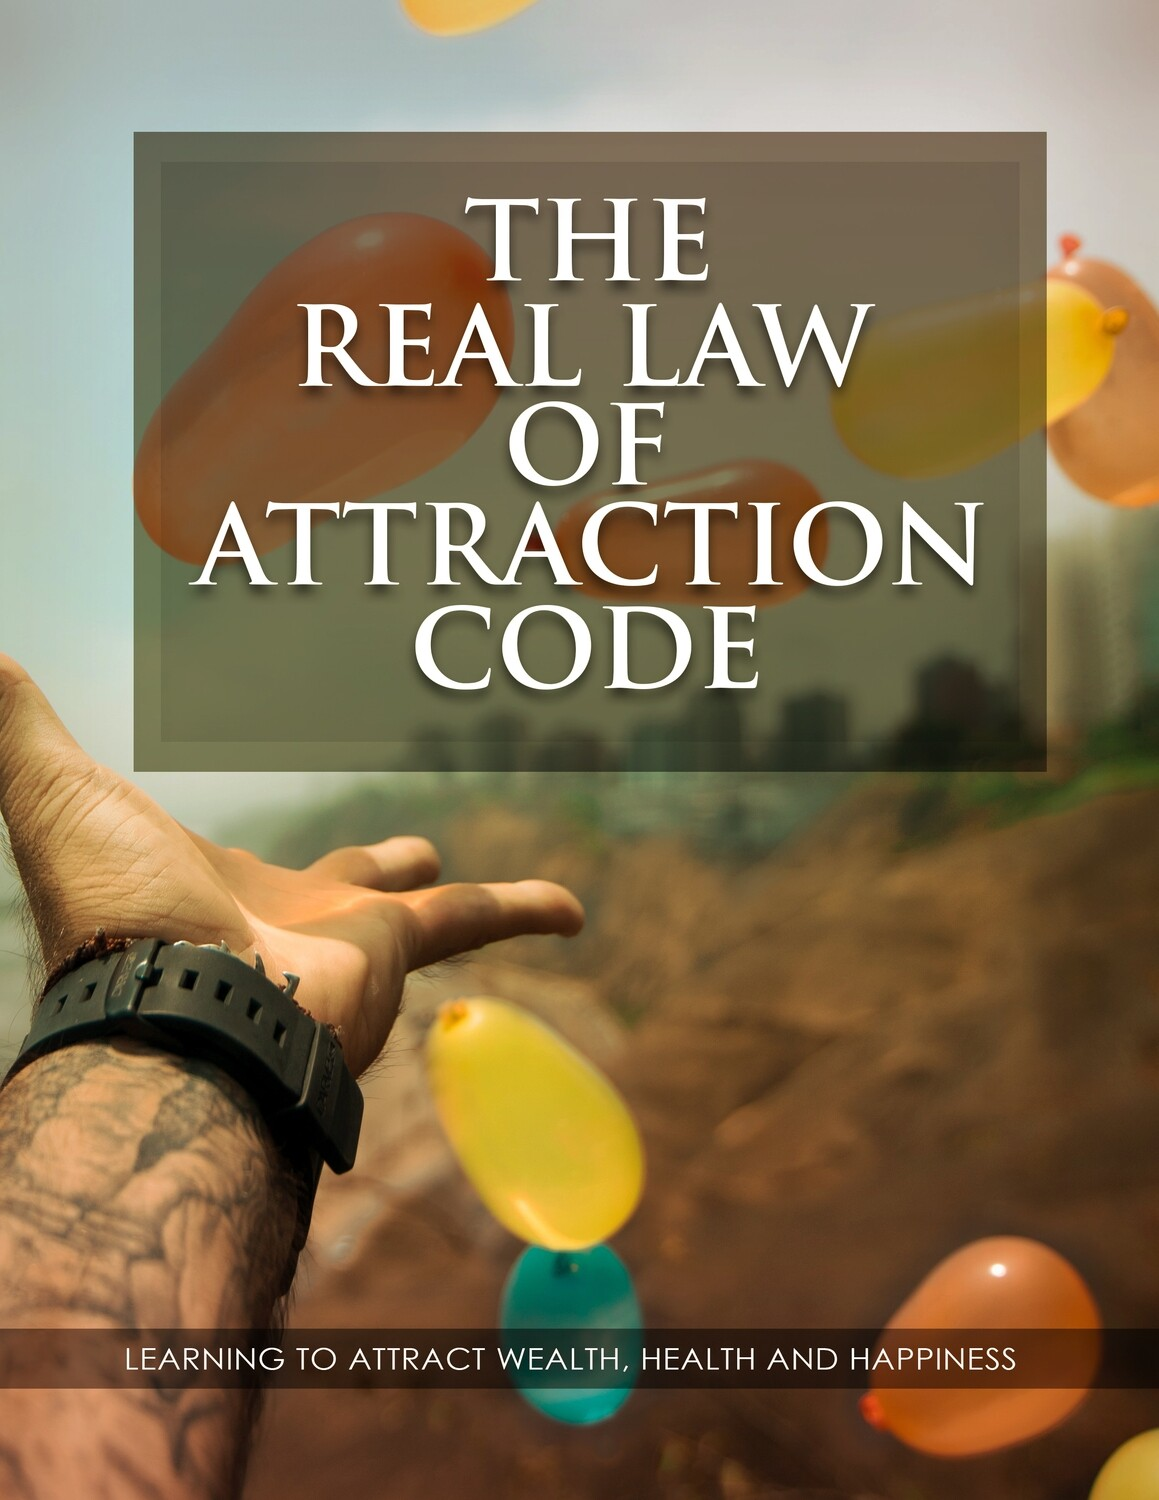 The Real Law Of Attraction Code Training Guide (Ebook)